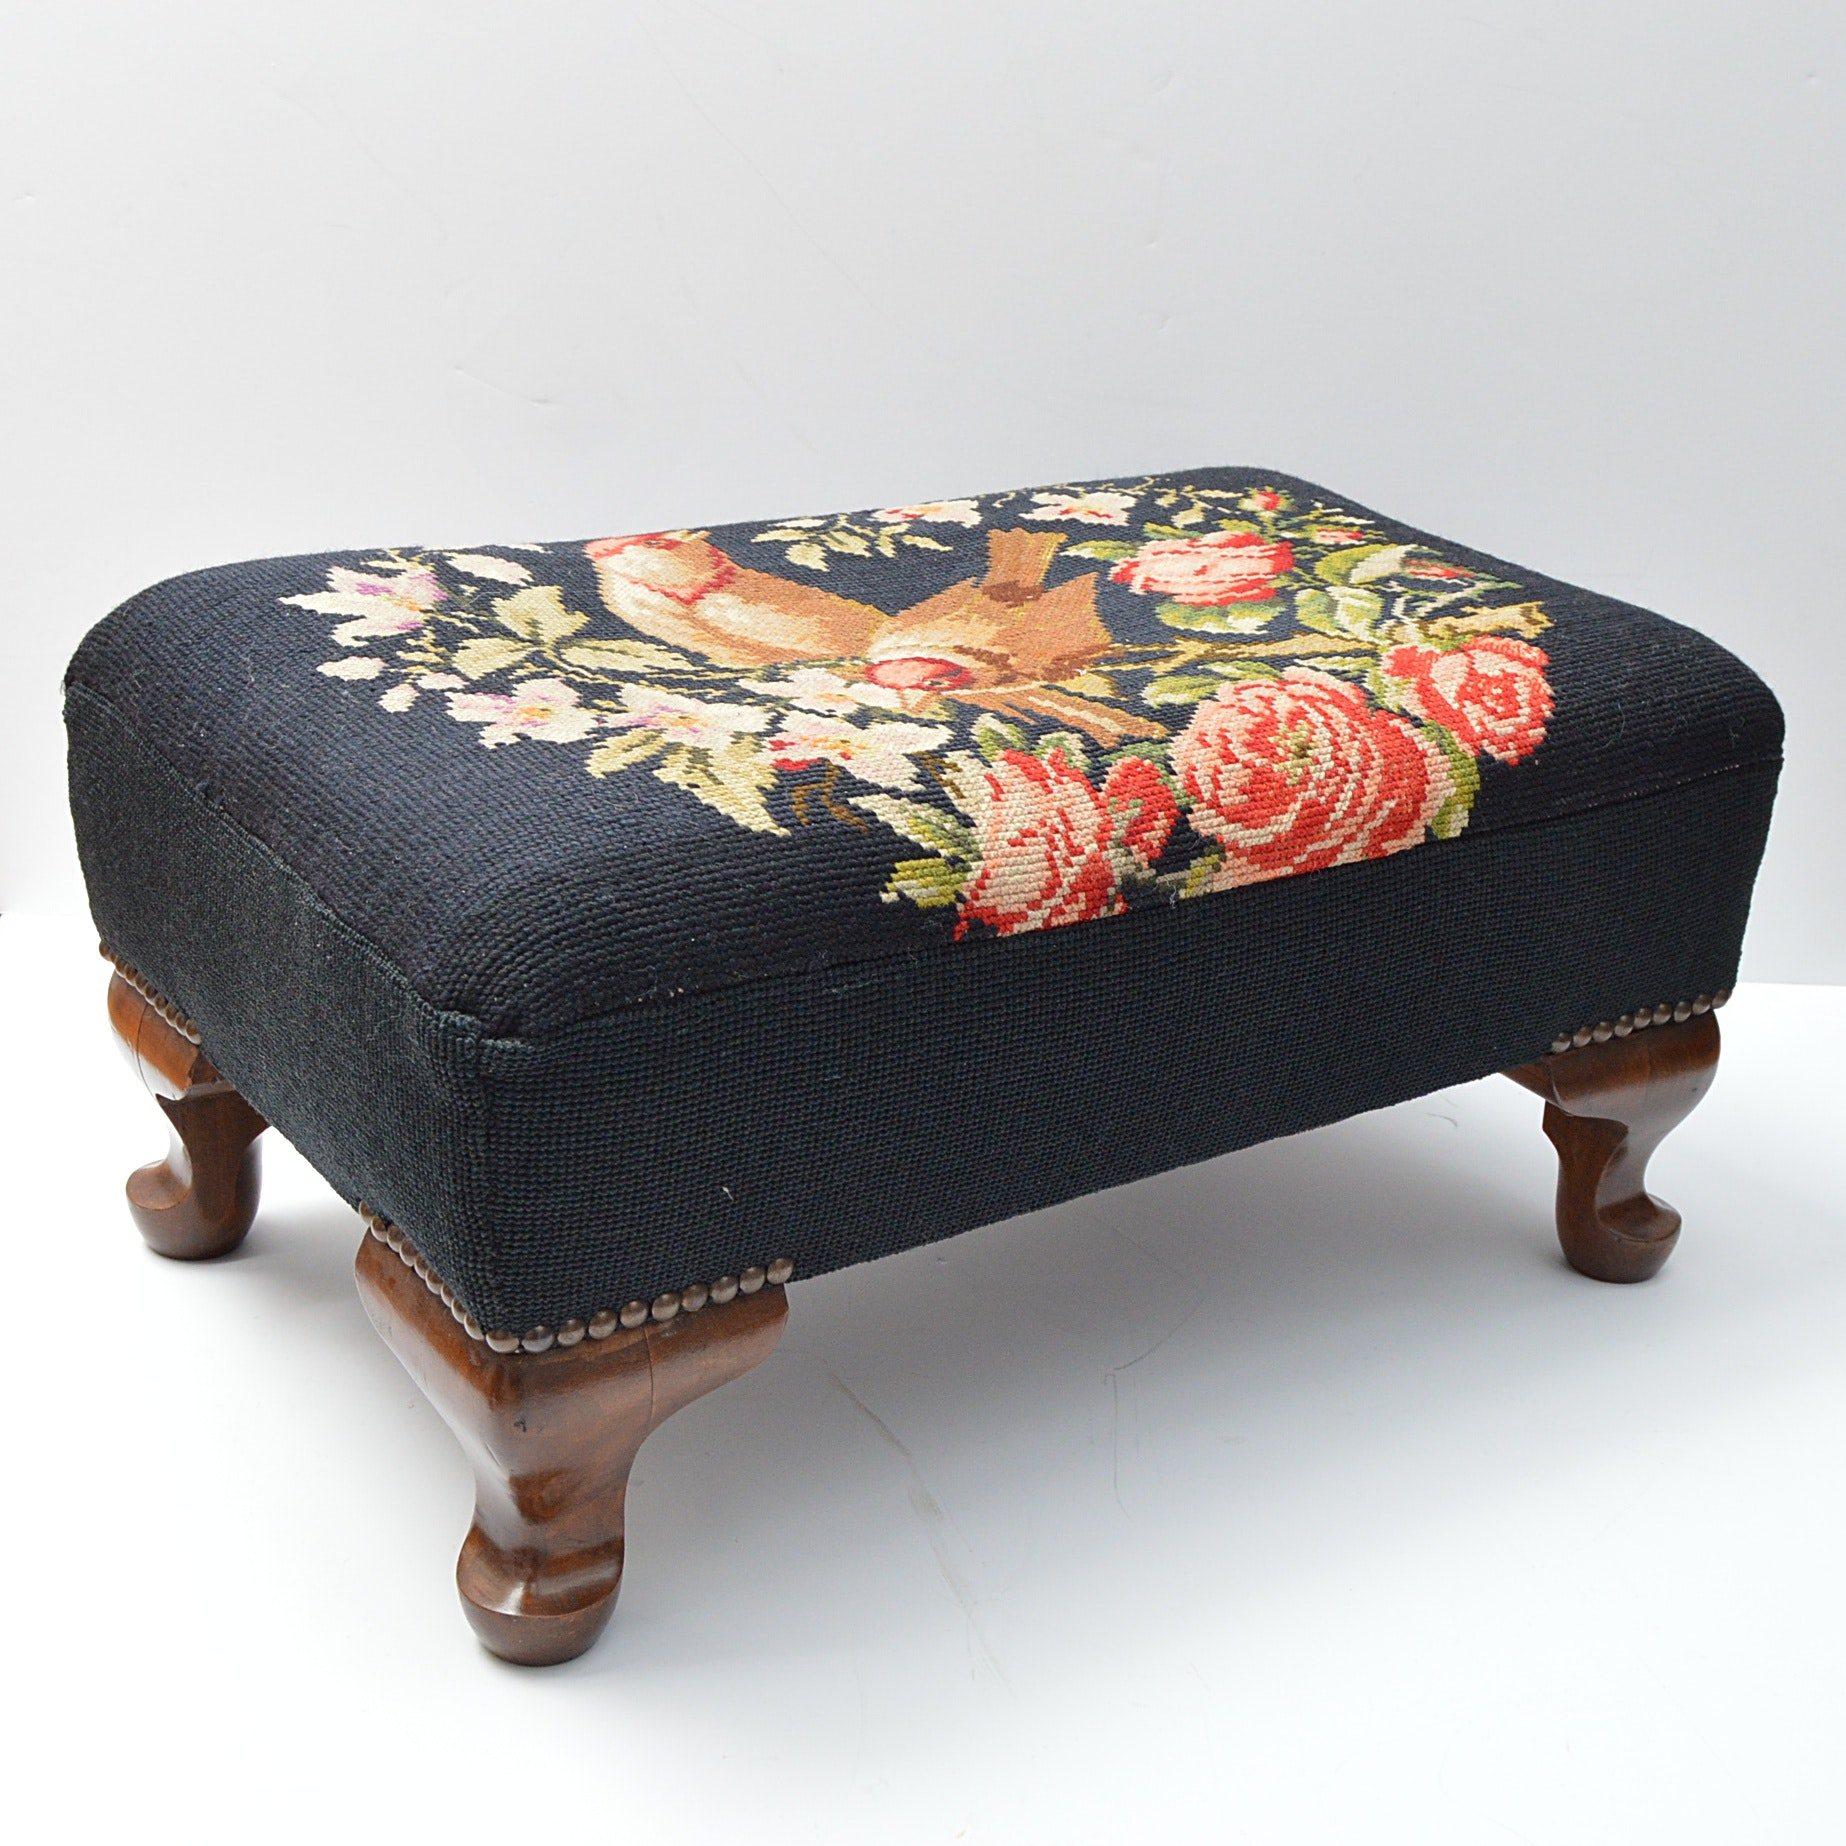 Vintage Queen Anne Style Needlepoint Footstool